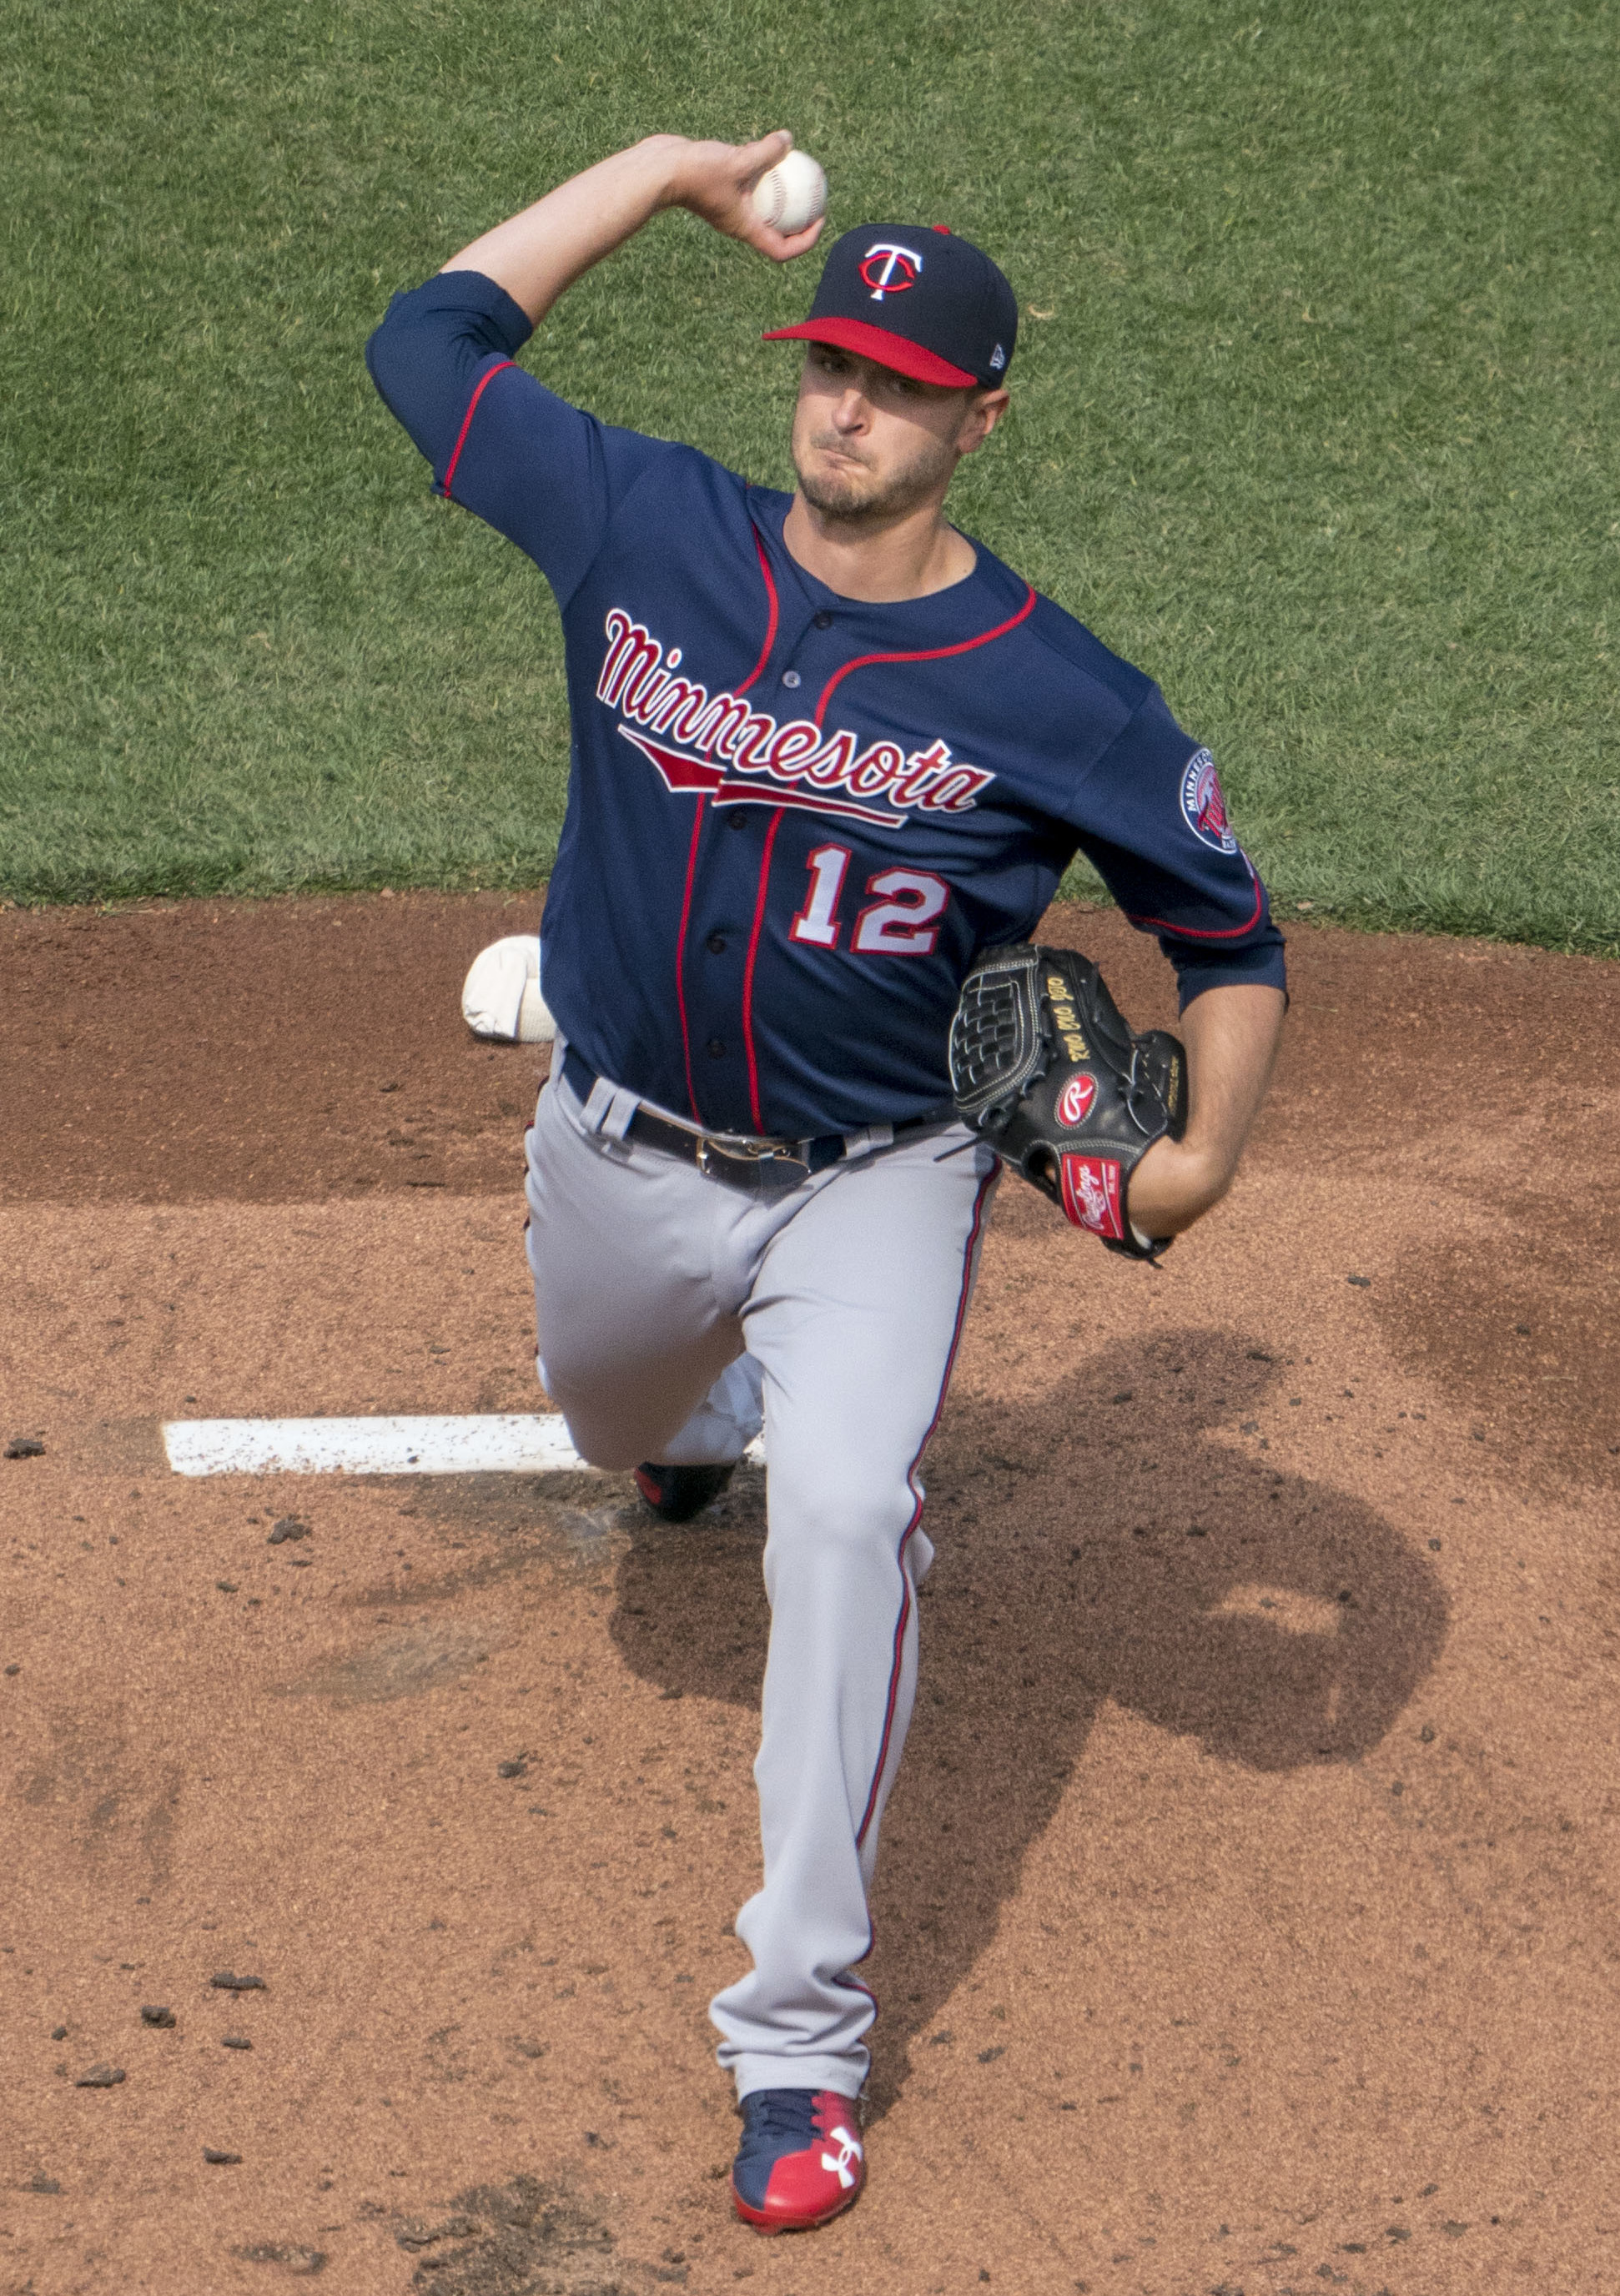 September 13, 2019 -- The Indians are predicted to beat the Twins at home. The Indians top hitter is Francisco Lindor and projected starting pitcher is Aaron Civale.